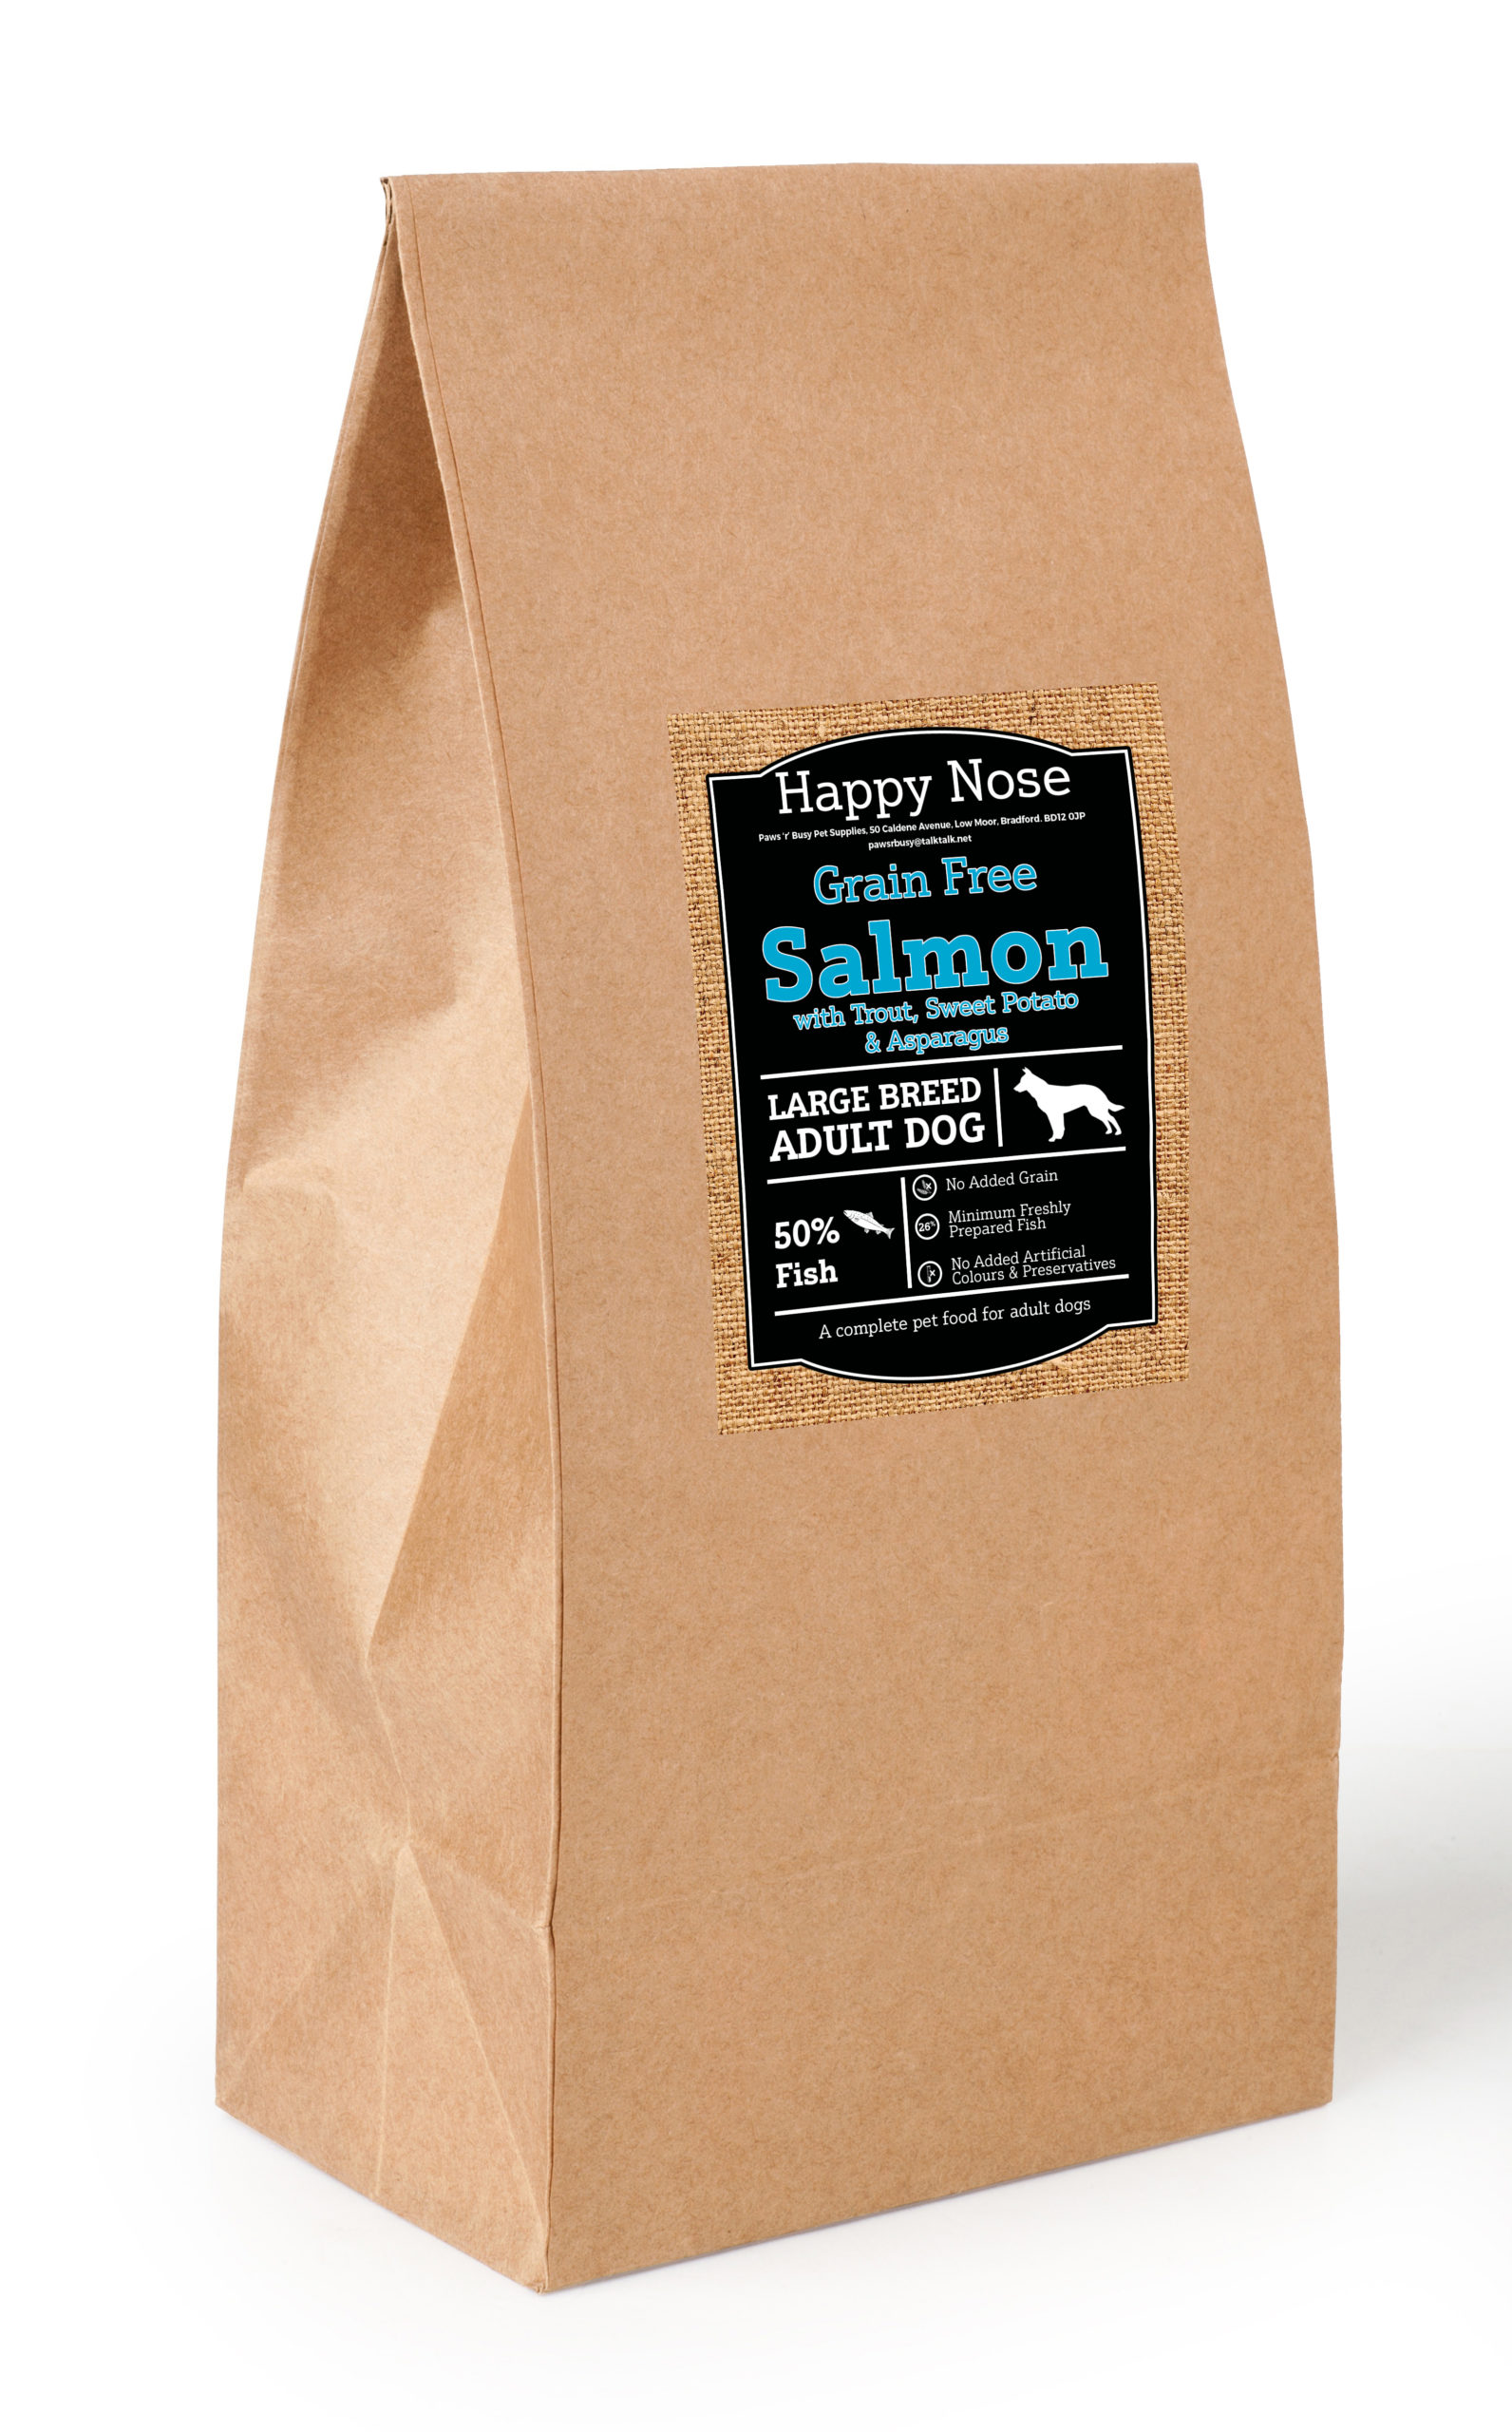 Large Breed Salmon,Trout,SP & Asparagus Adult Dog Food